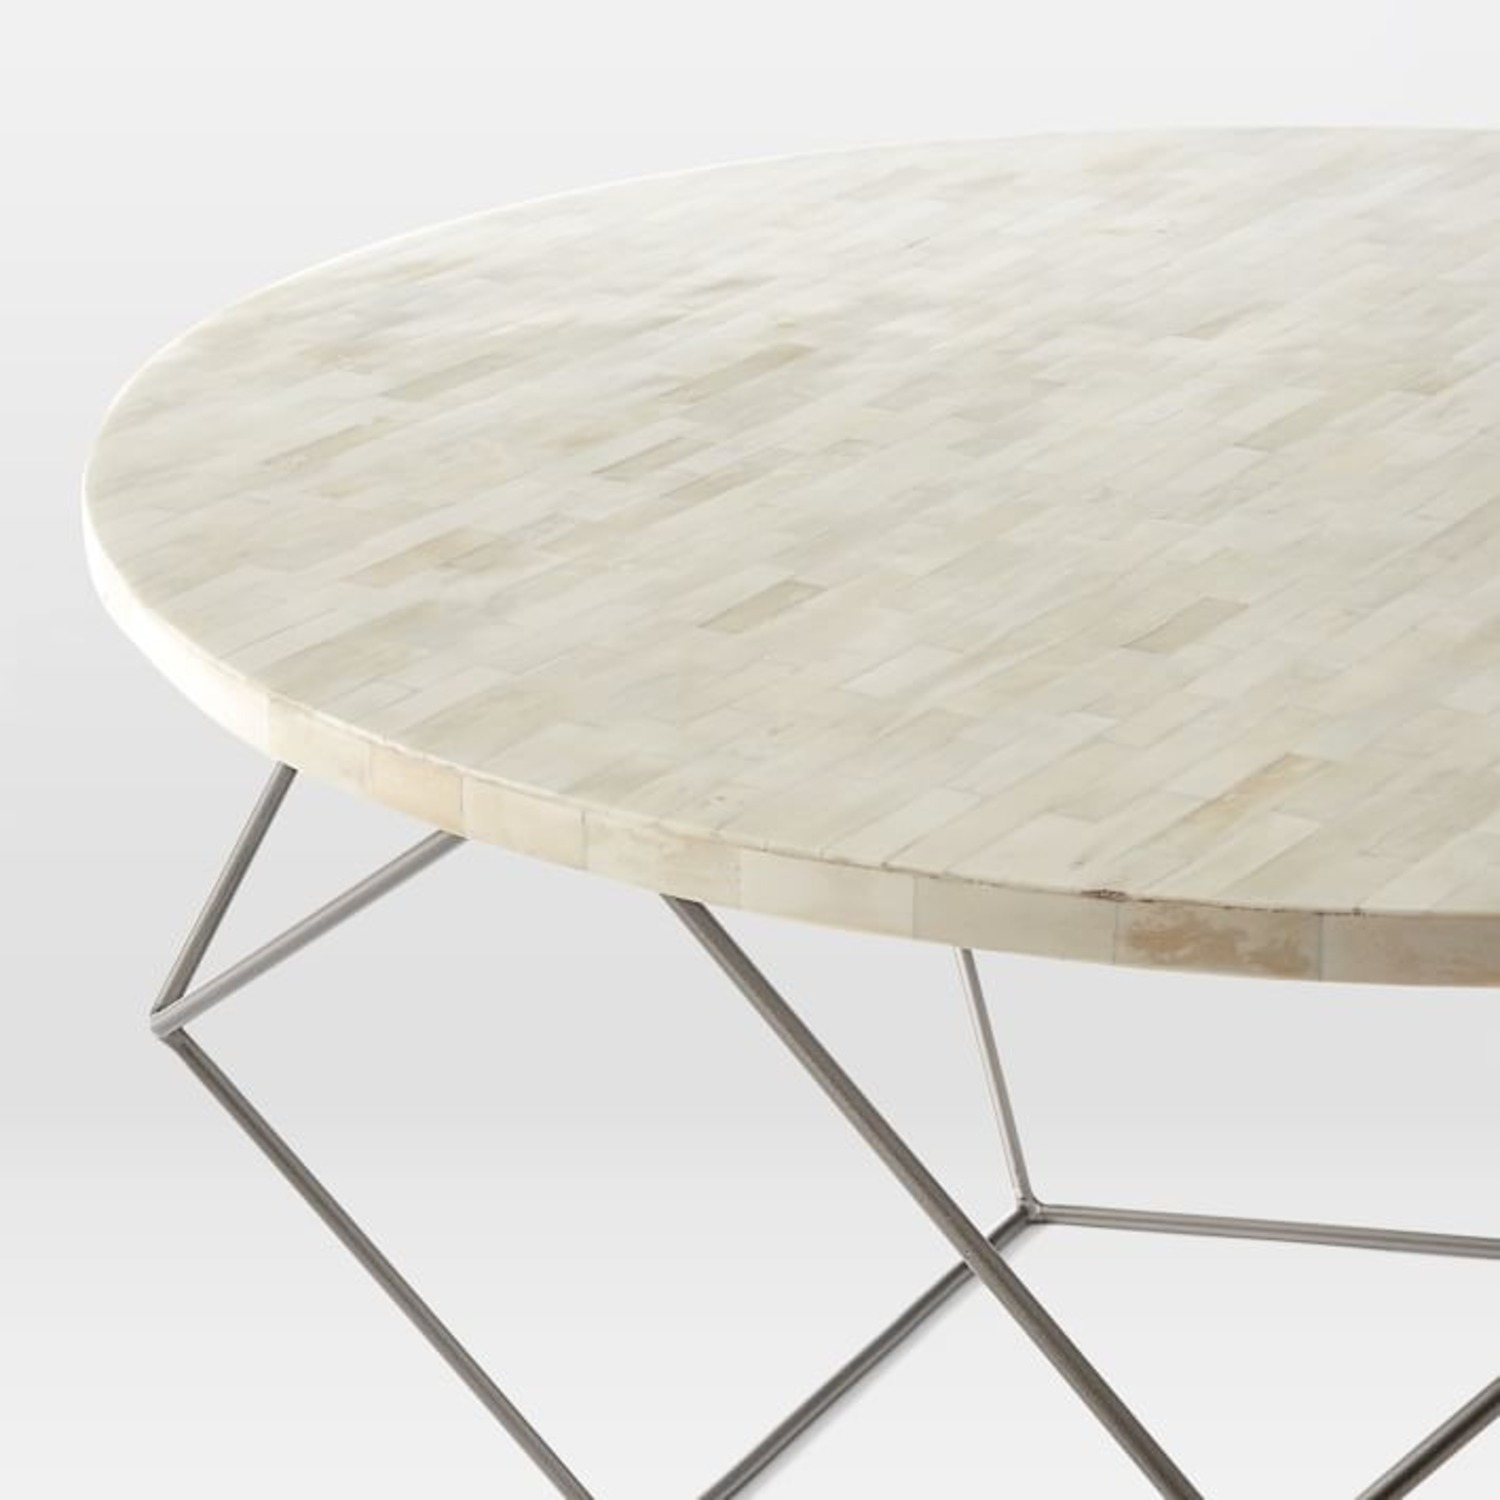 West Elm Origami Oversized Coffee Table - image-2